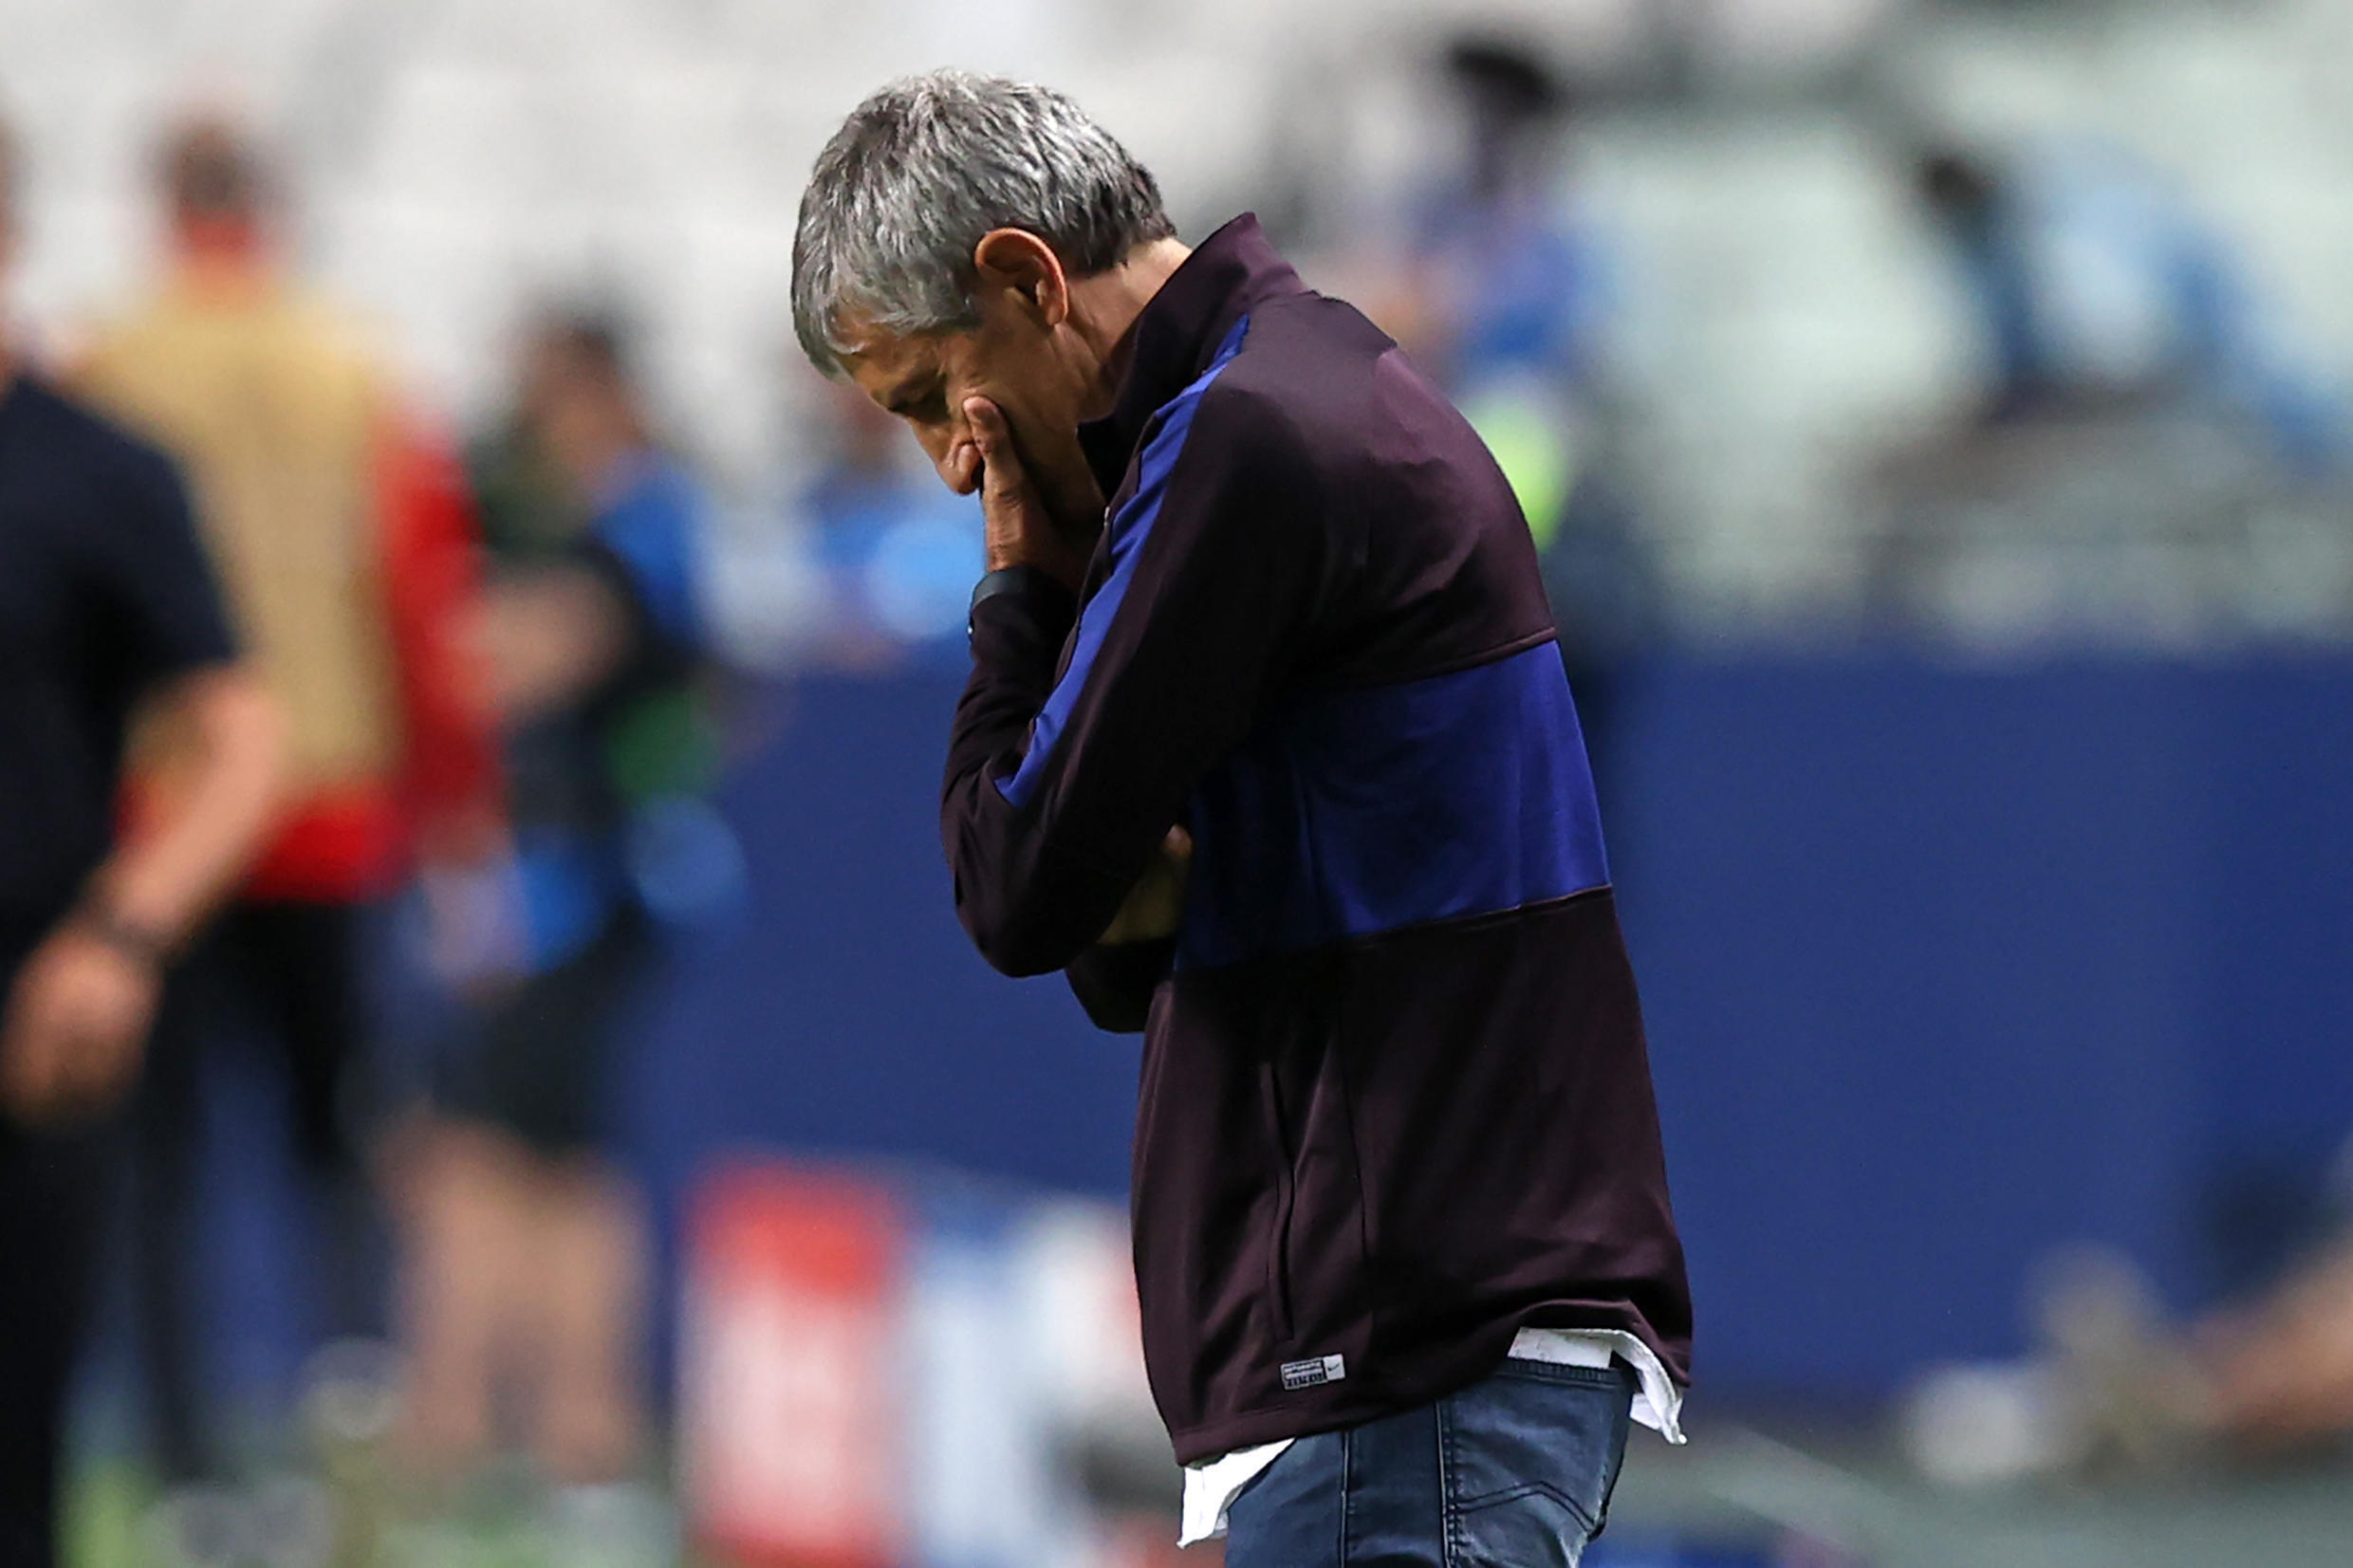 Quique Setien was sacked as Barcelona coach after barely six months in charge